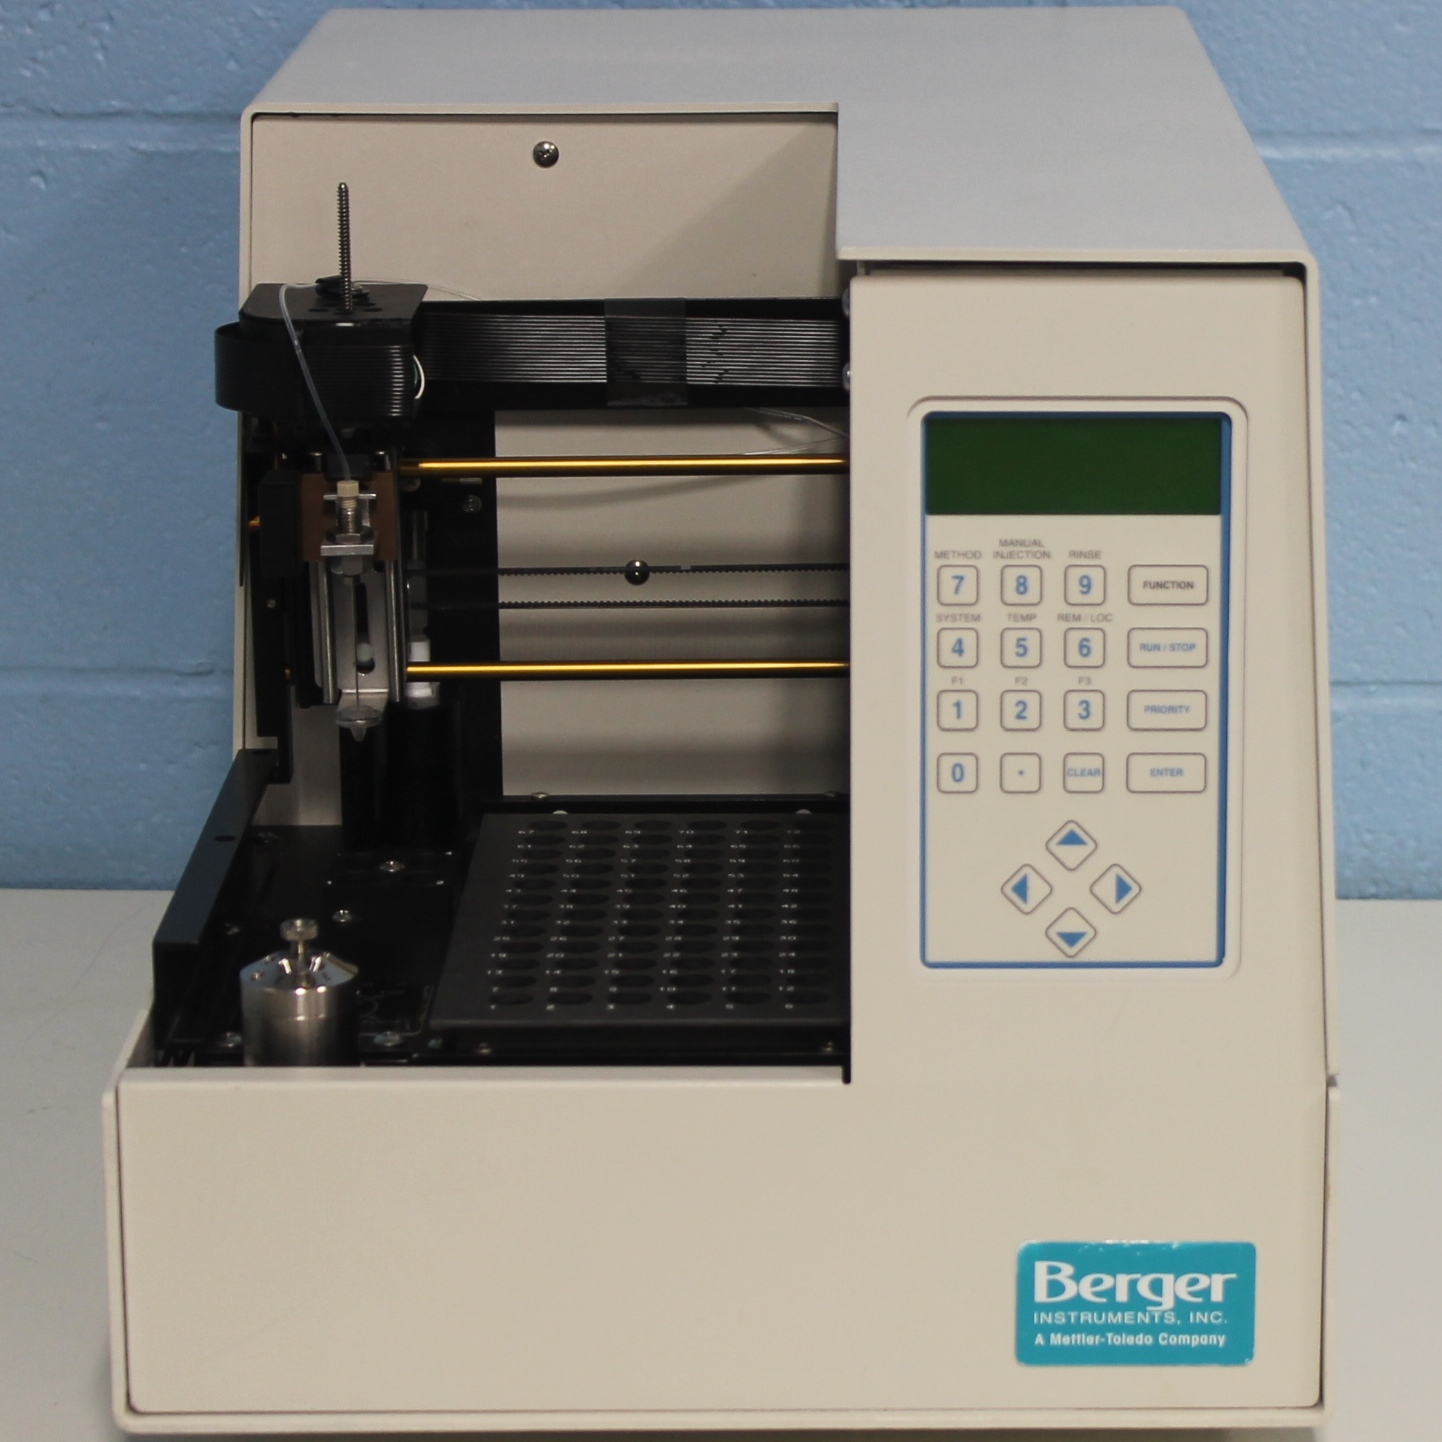 Berger SFC Analytix and MiniGram Automatic Liquid Sampler Model 719/0000032 Image